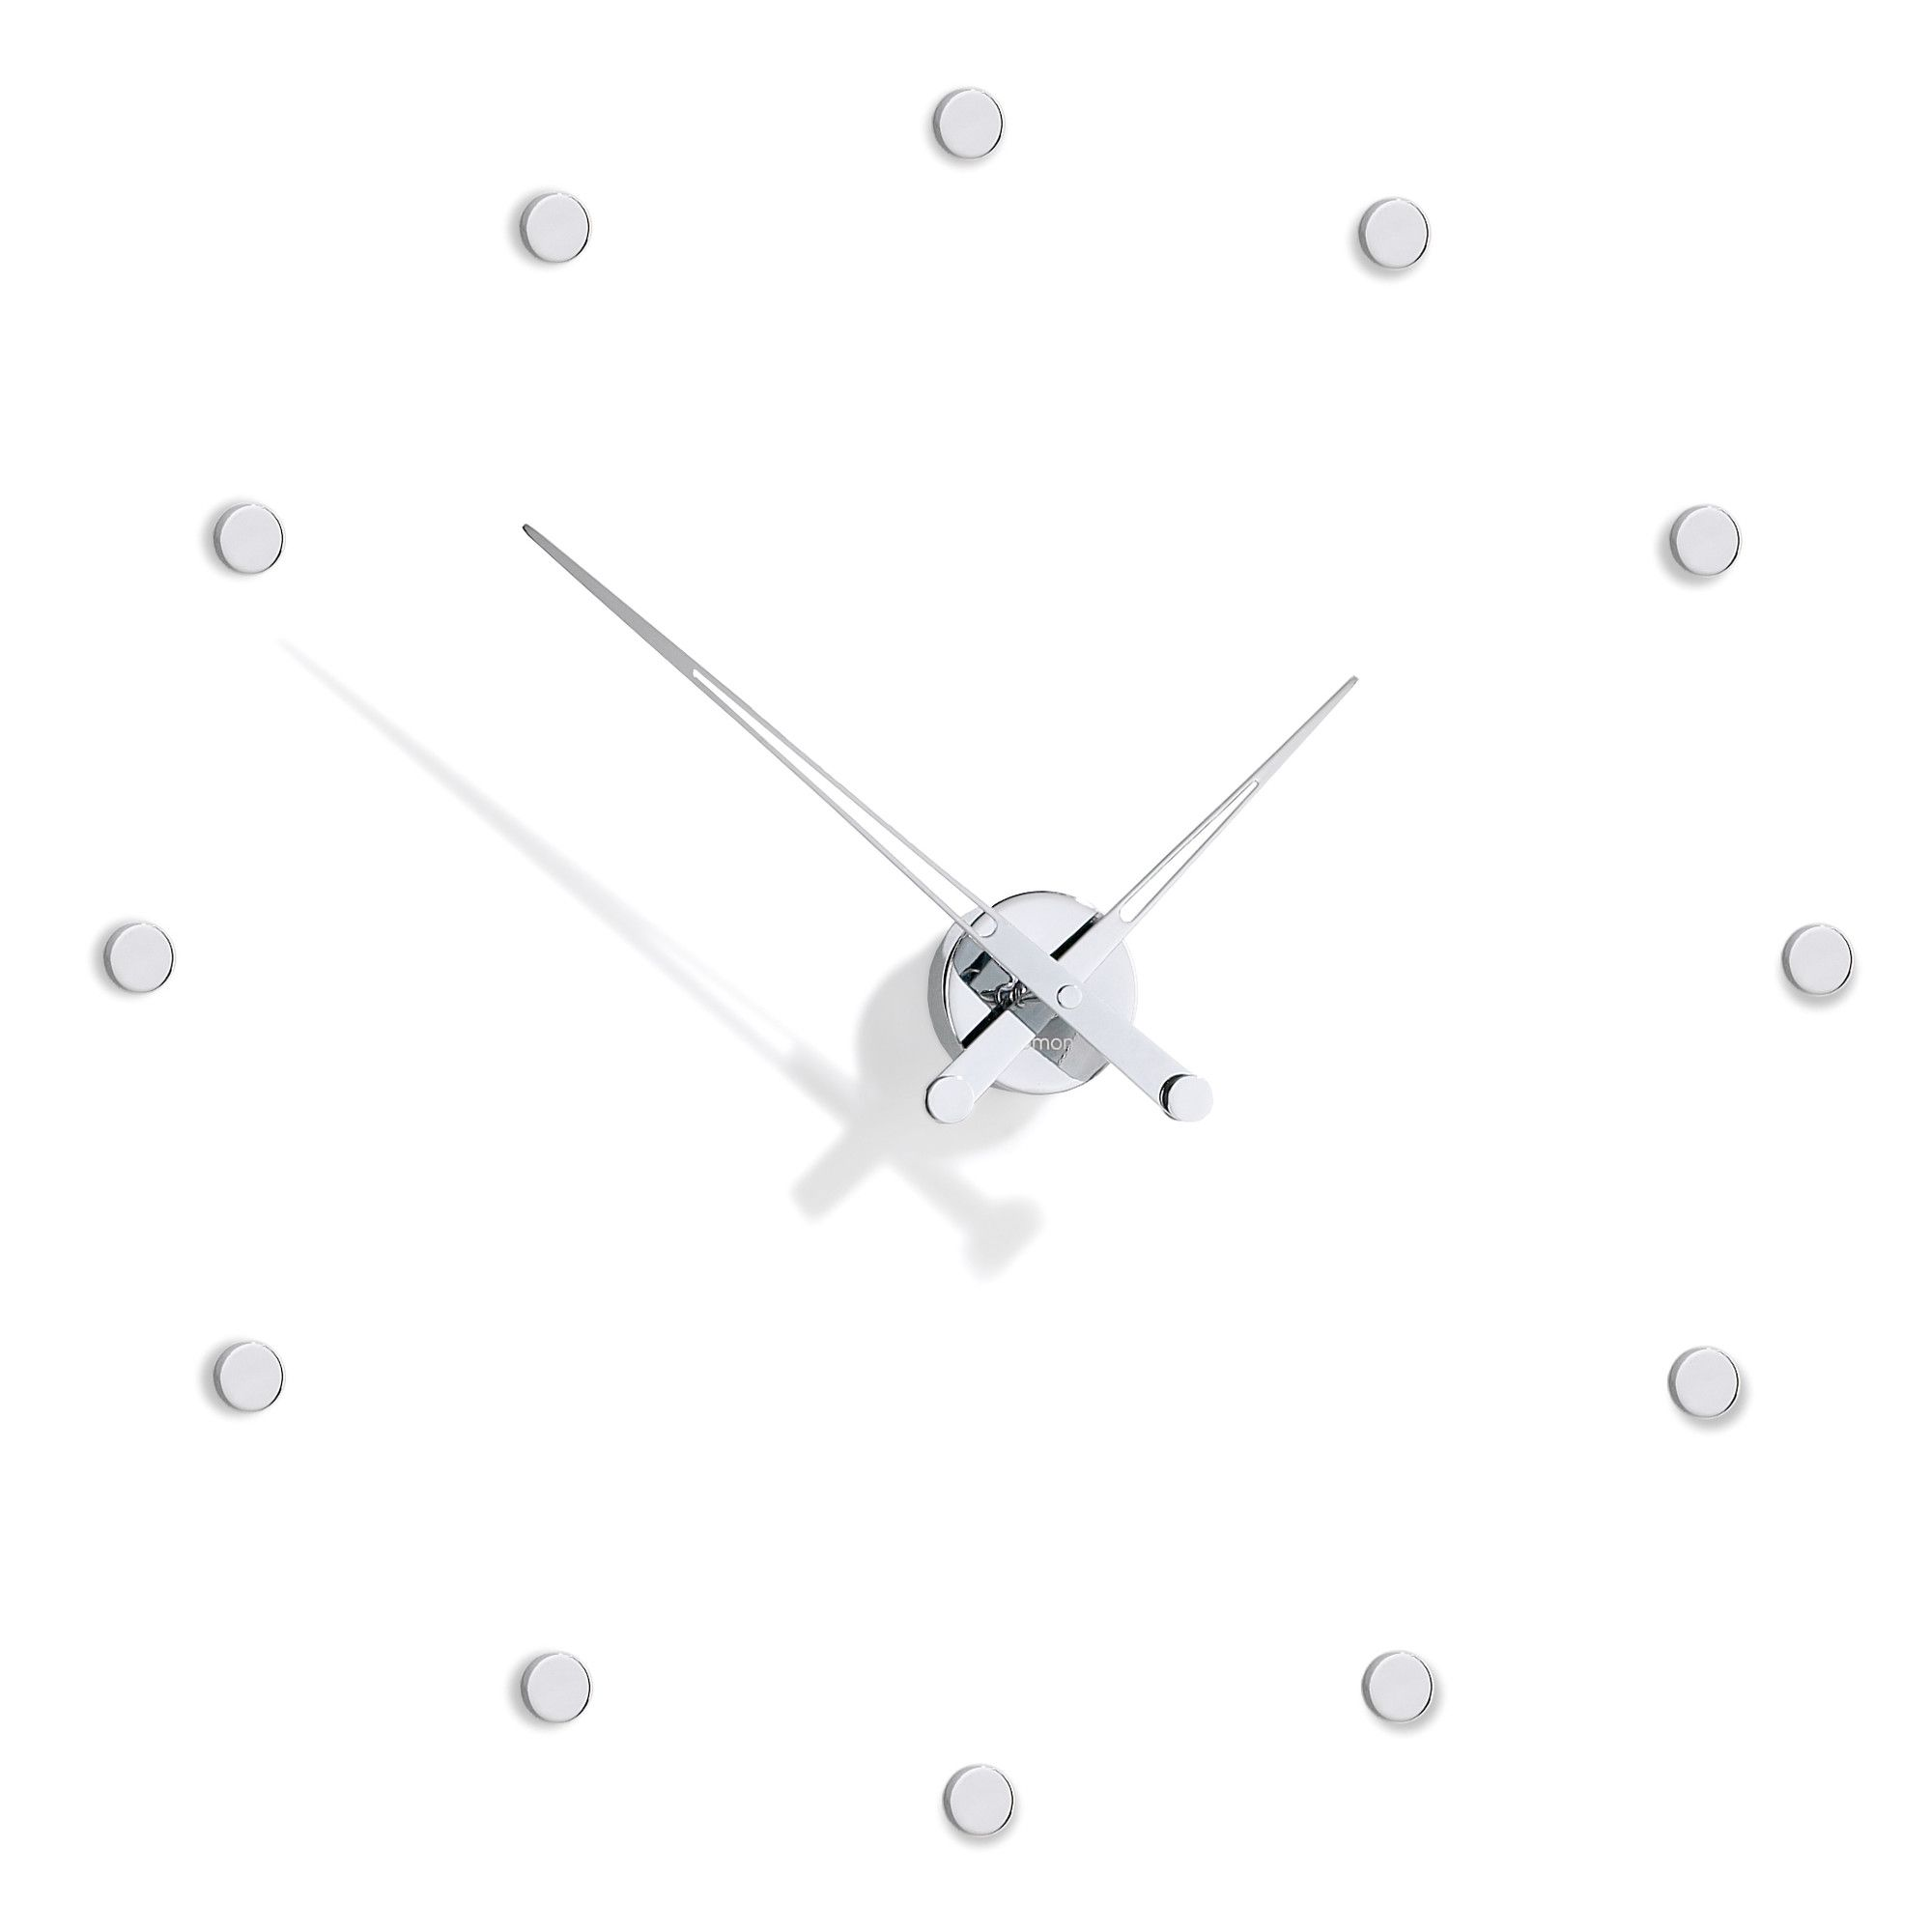 NOMON Rodon 12 I Clock - Chromed at Tesco Direct